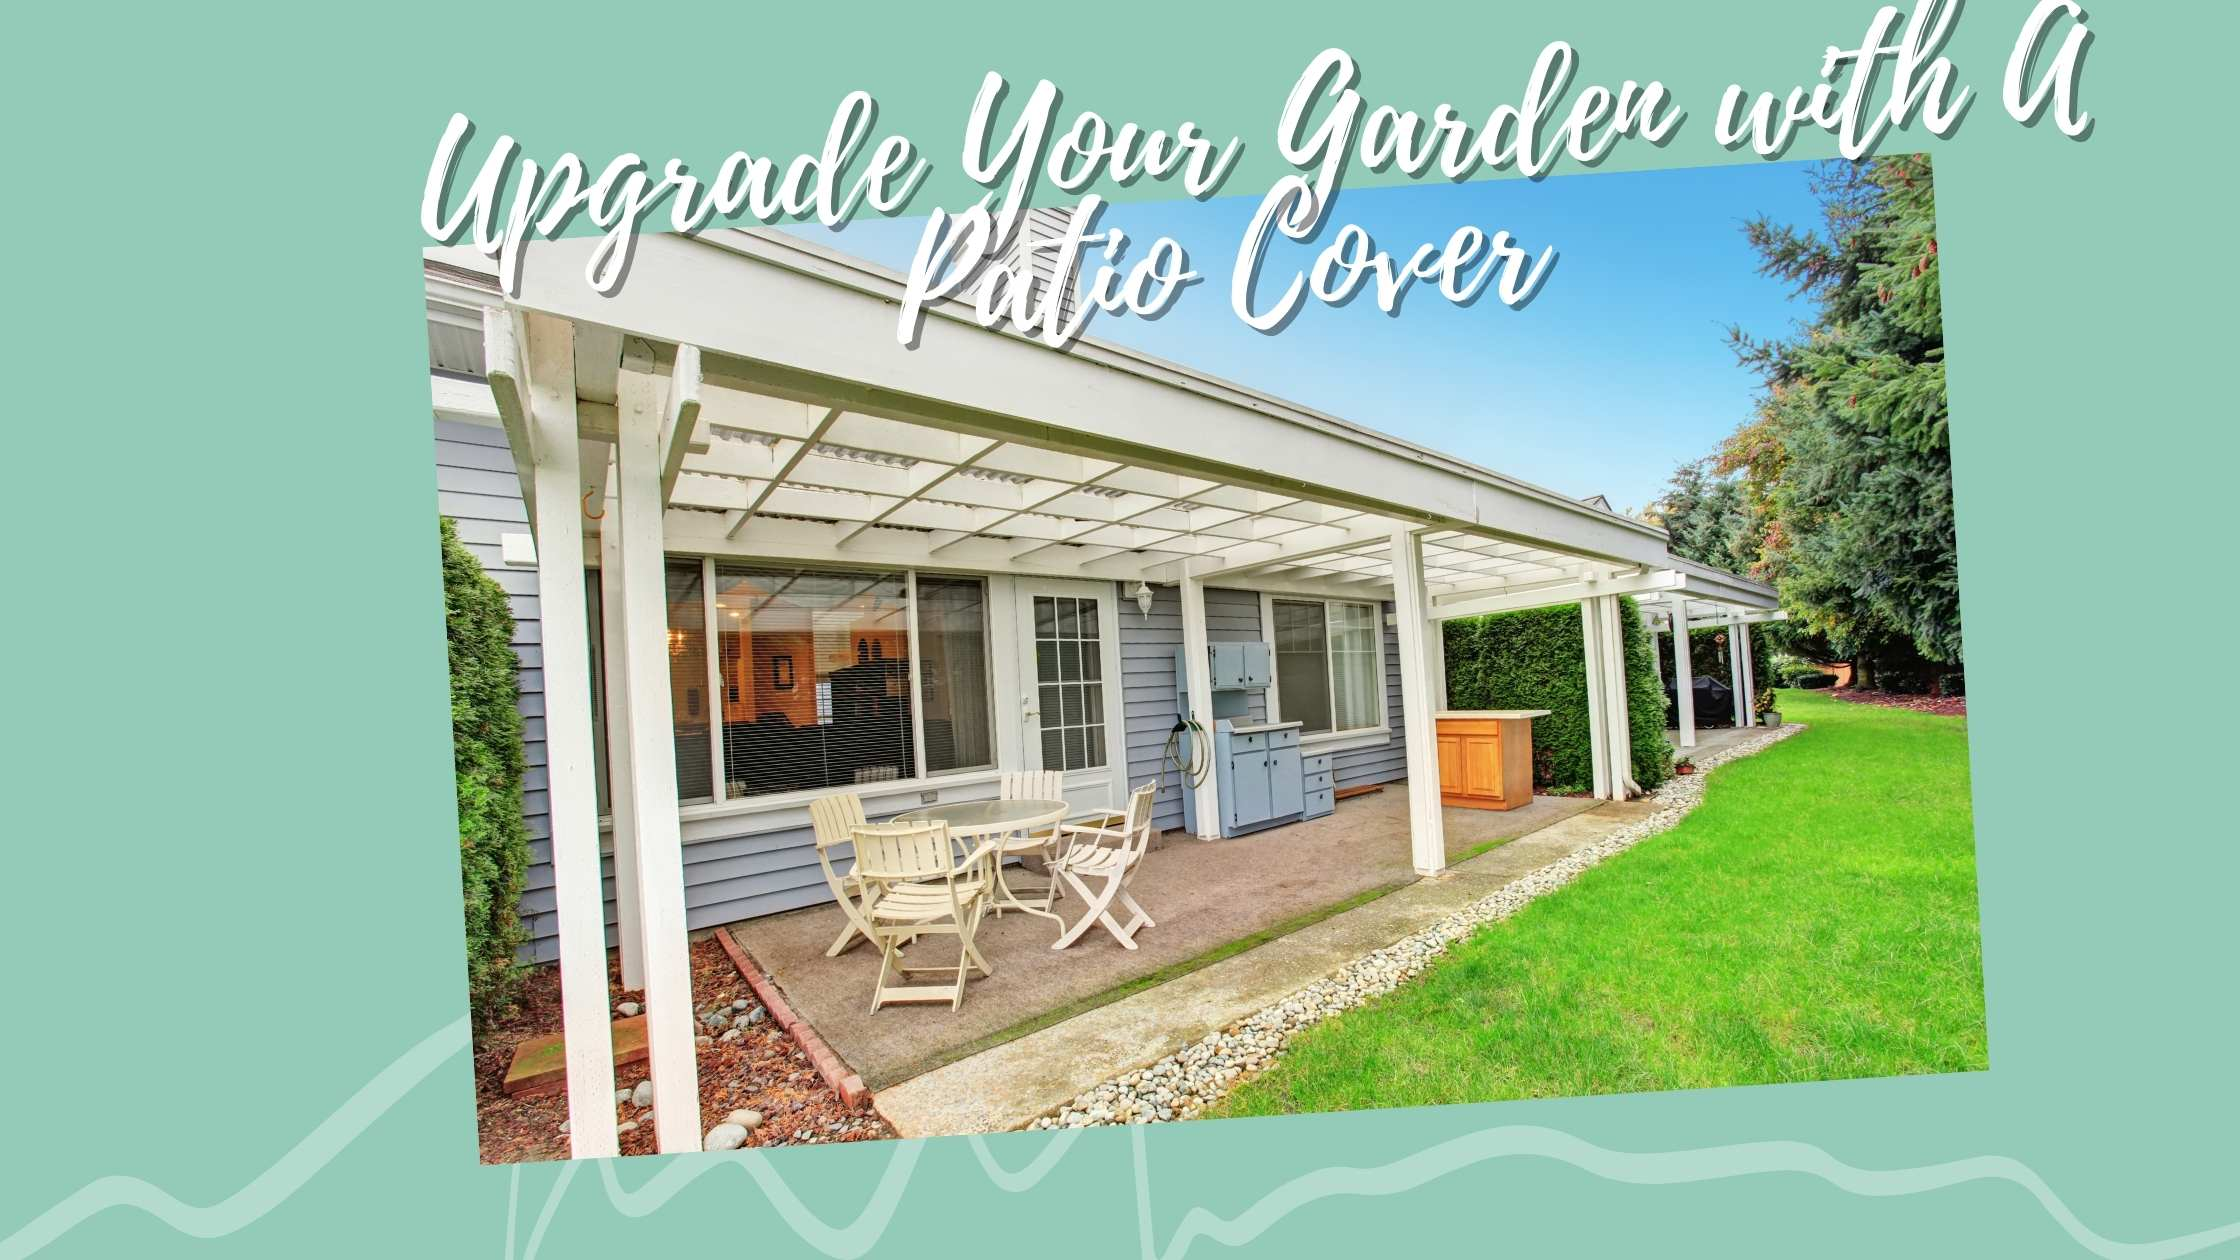 Upgrade Your Garden with A Patio Cover